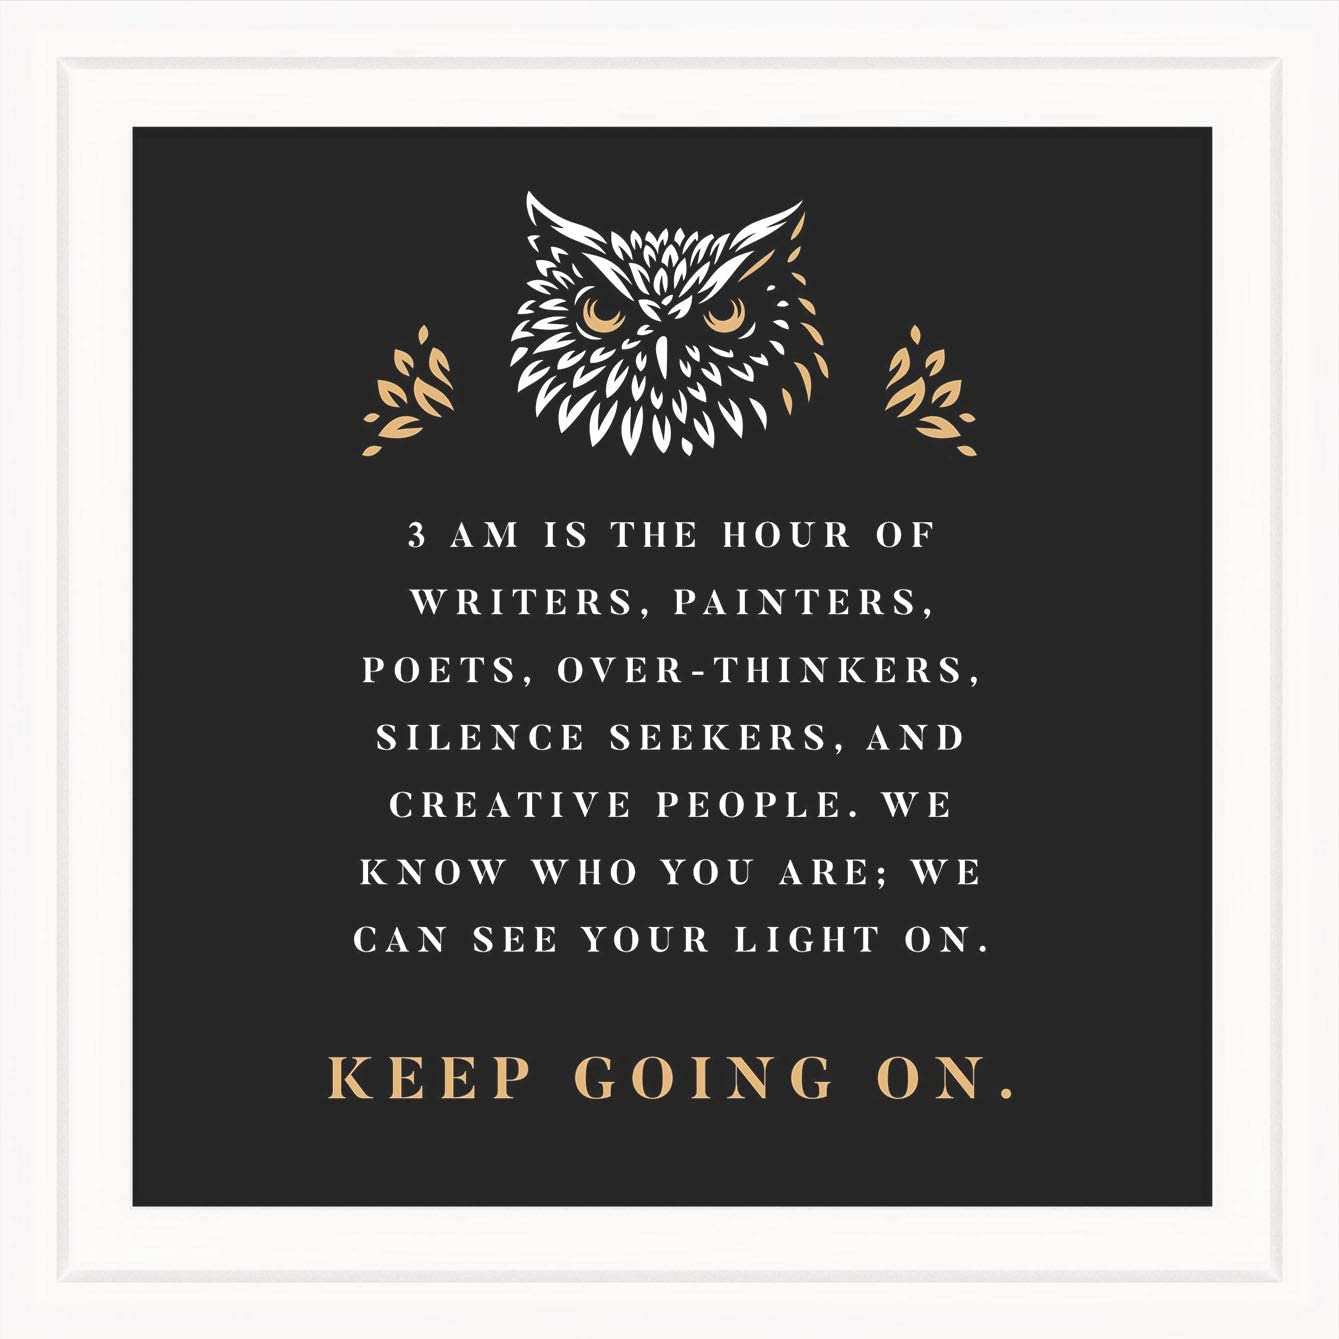 Owl Sign Decor | Positive Message Wall Art | Owls Motivational Artwork Plaque | Framed Inspiring Prints | Cute Quote Picture Decorations | Owl Lovers Gift Ideas